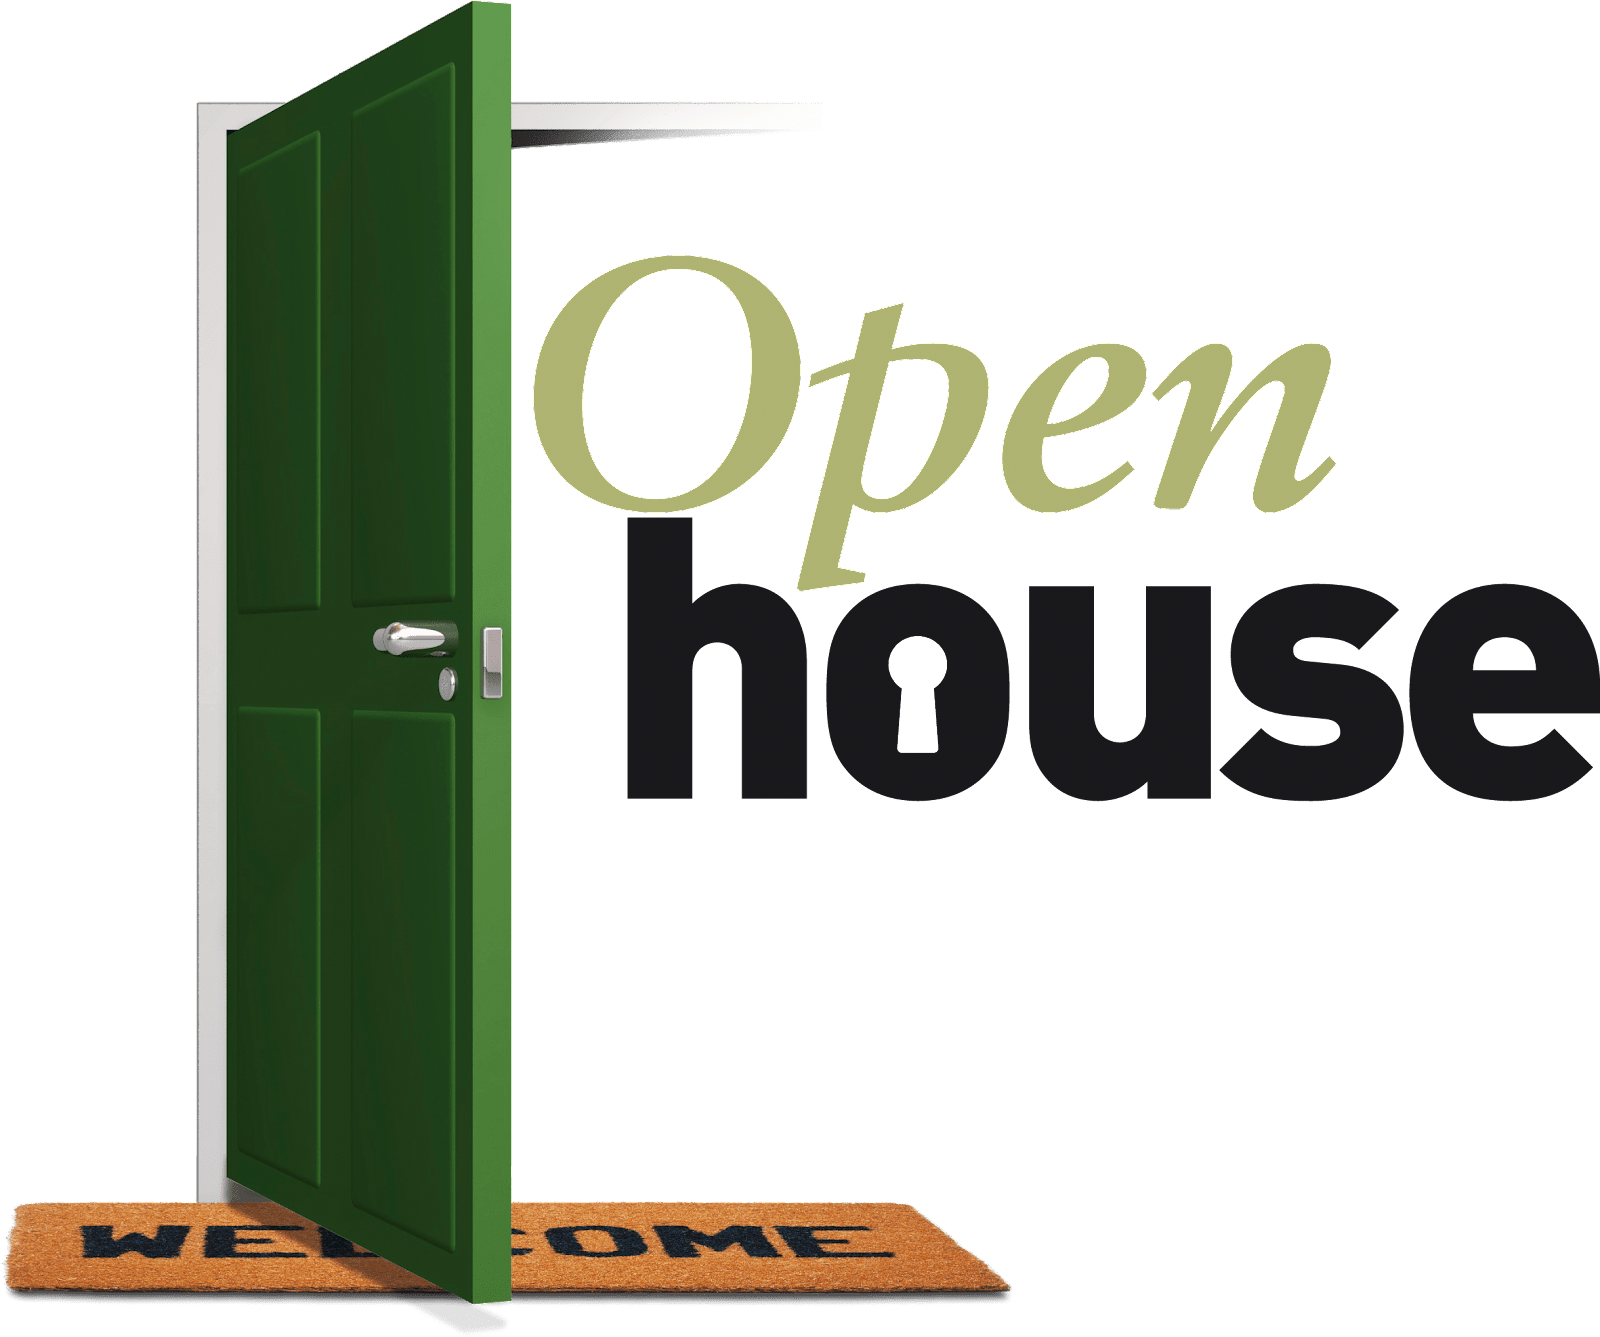 Back to School Open House August 29 - All Welcome